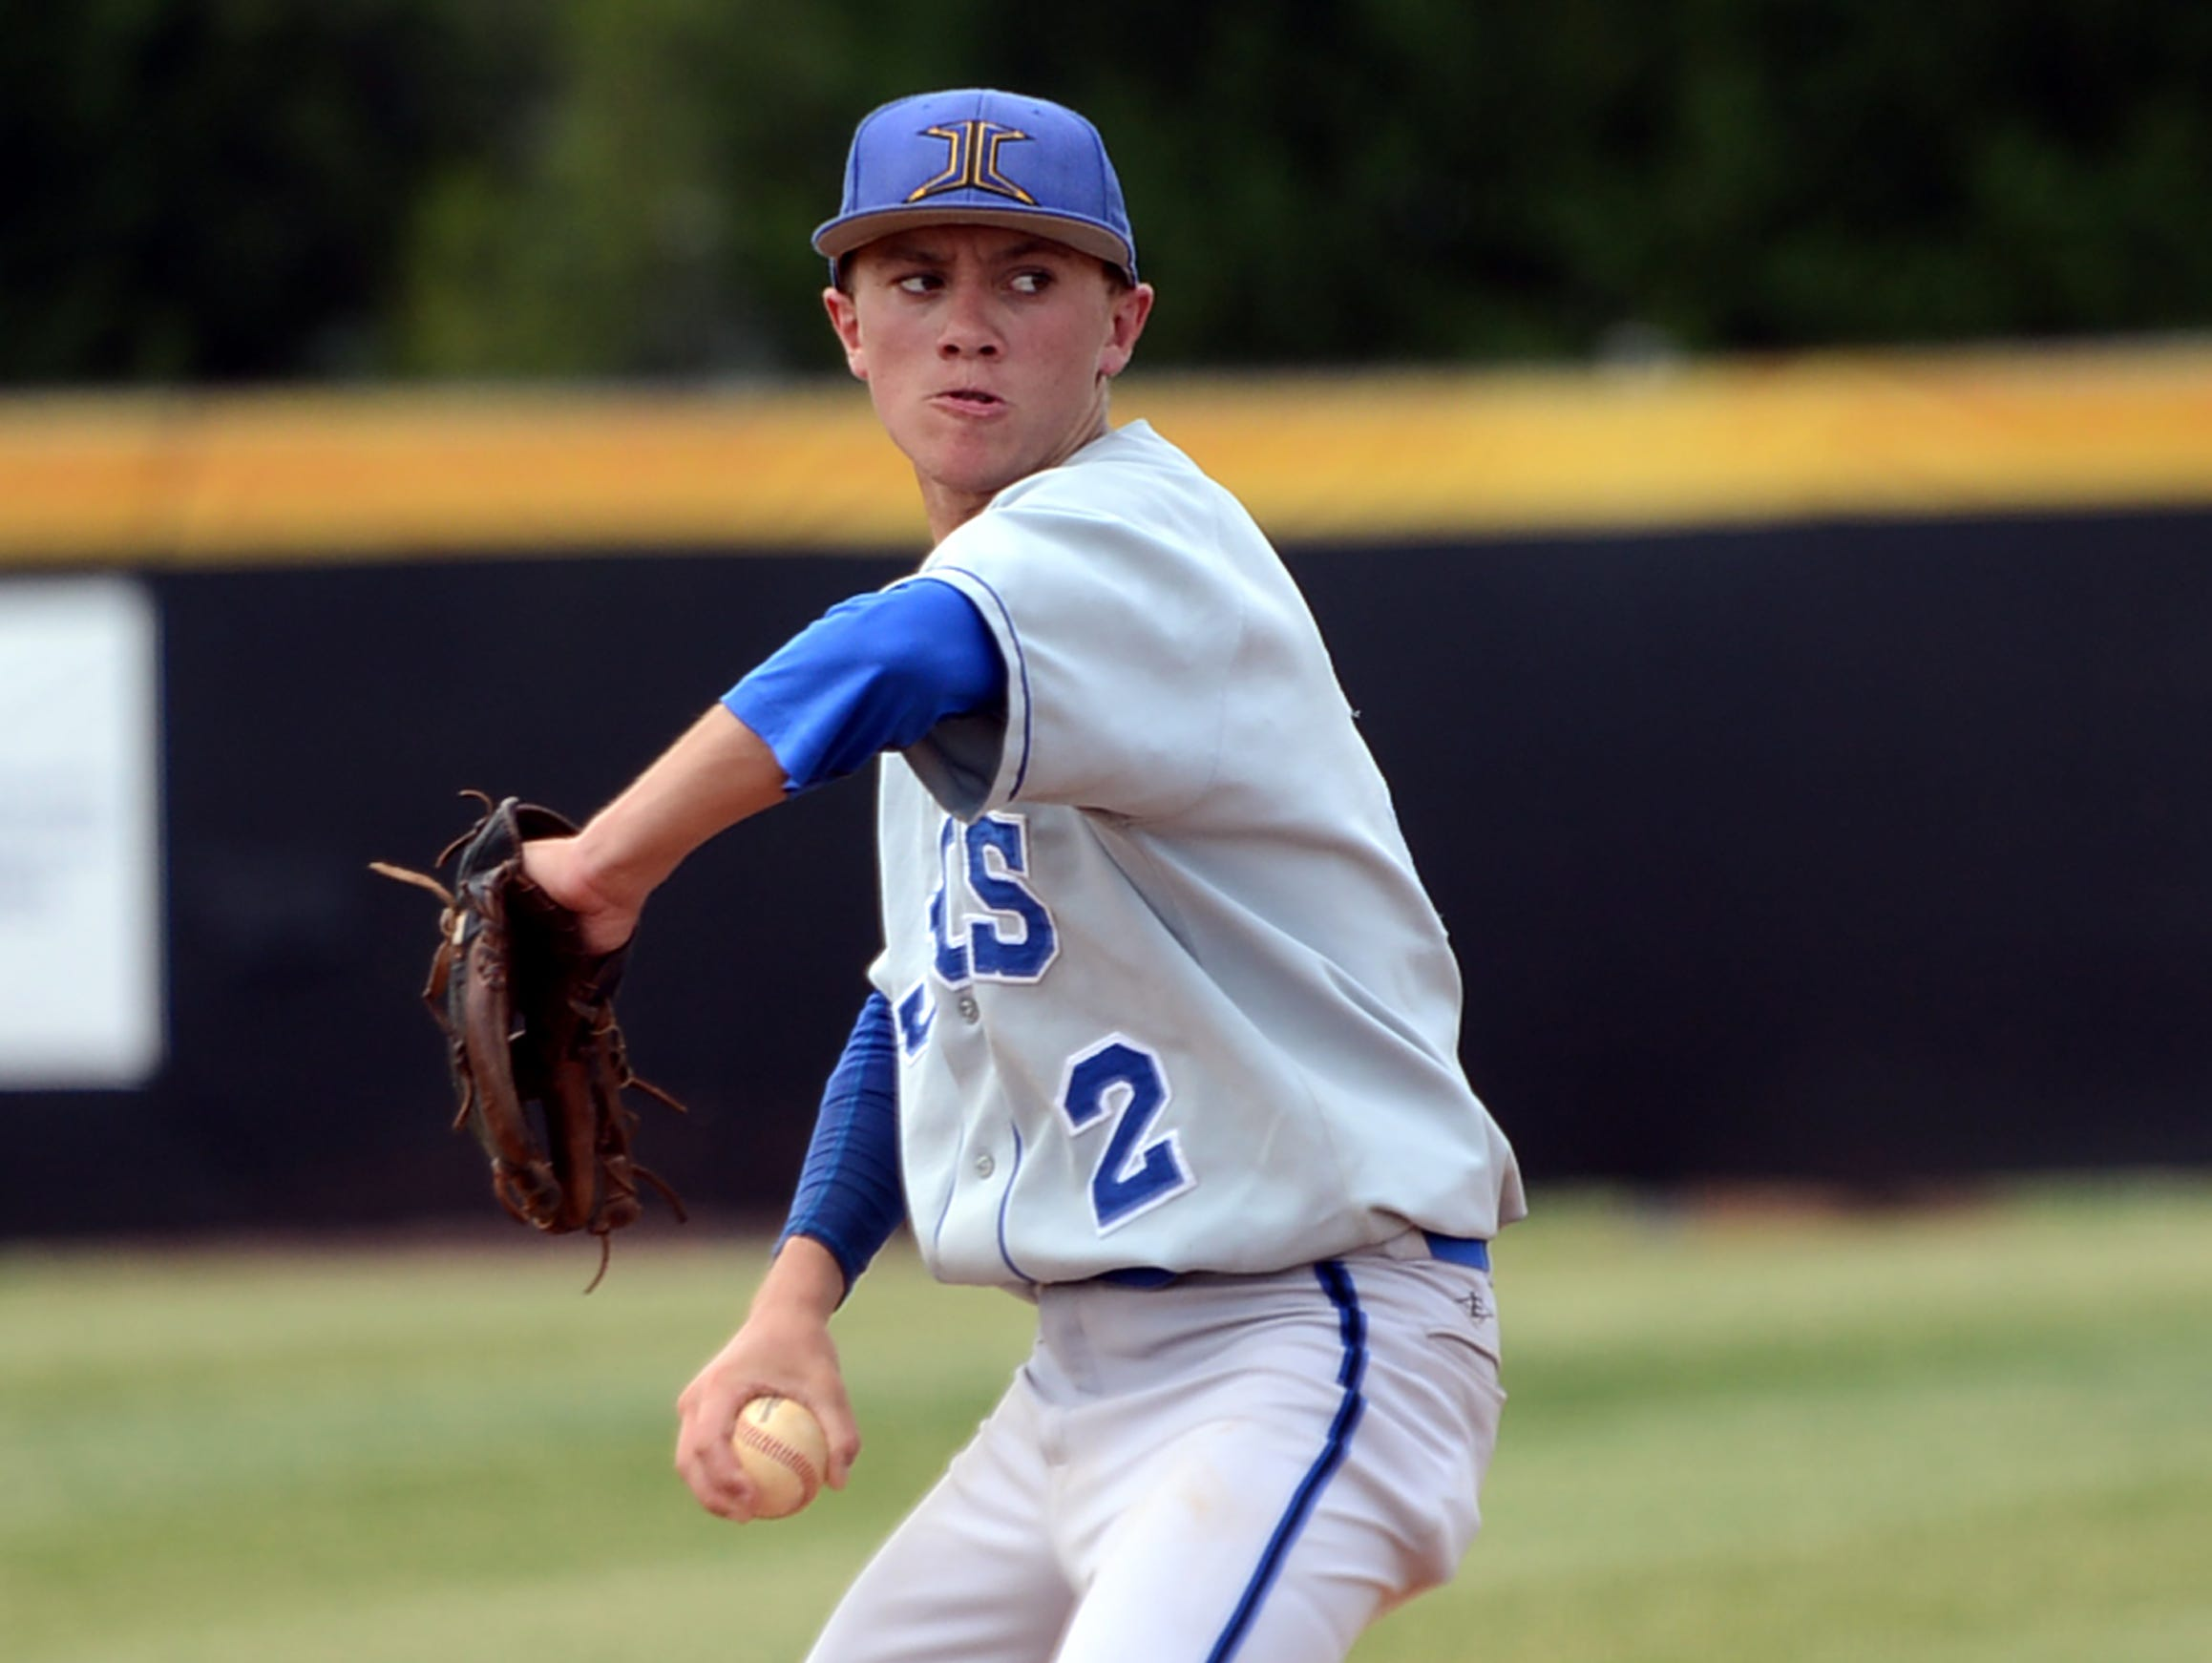 Jackson Christian's Hunter Higdon winds back for a pitch during game one of their doubleheader against Goodpasture Christian School on Thursday, May 22, 2014, during the Class A state tournament.